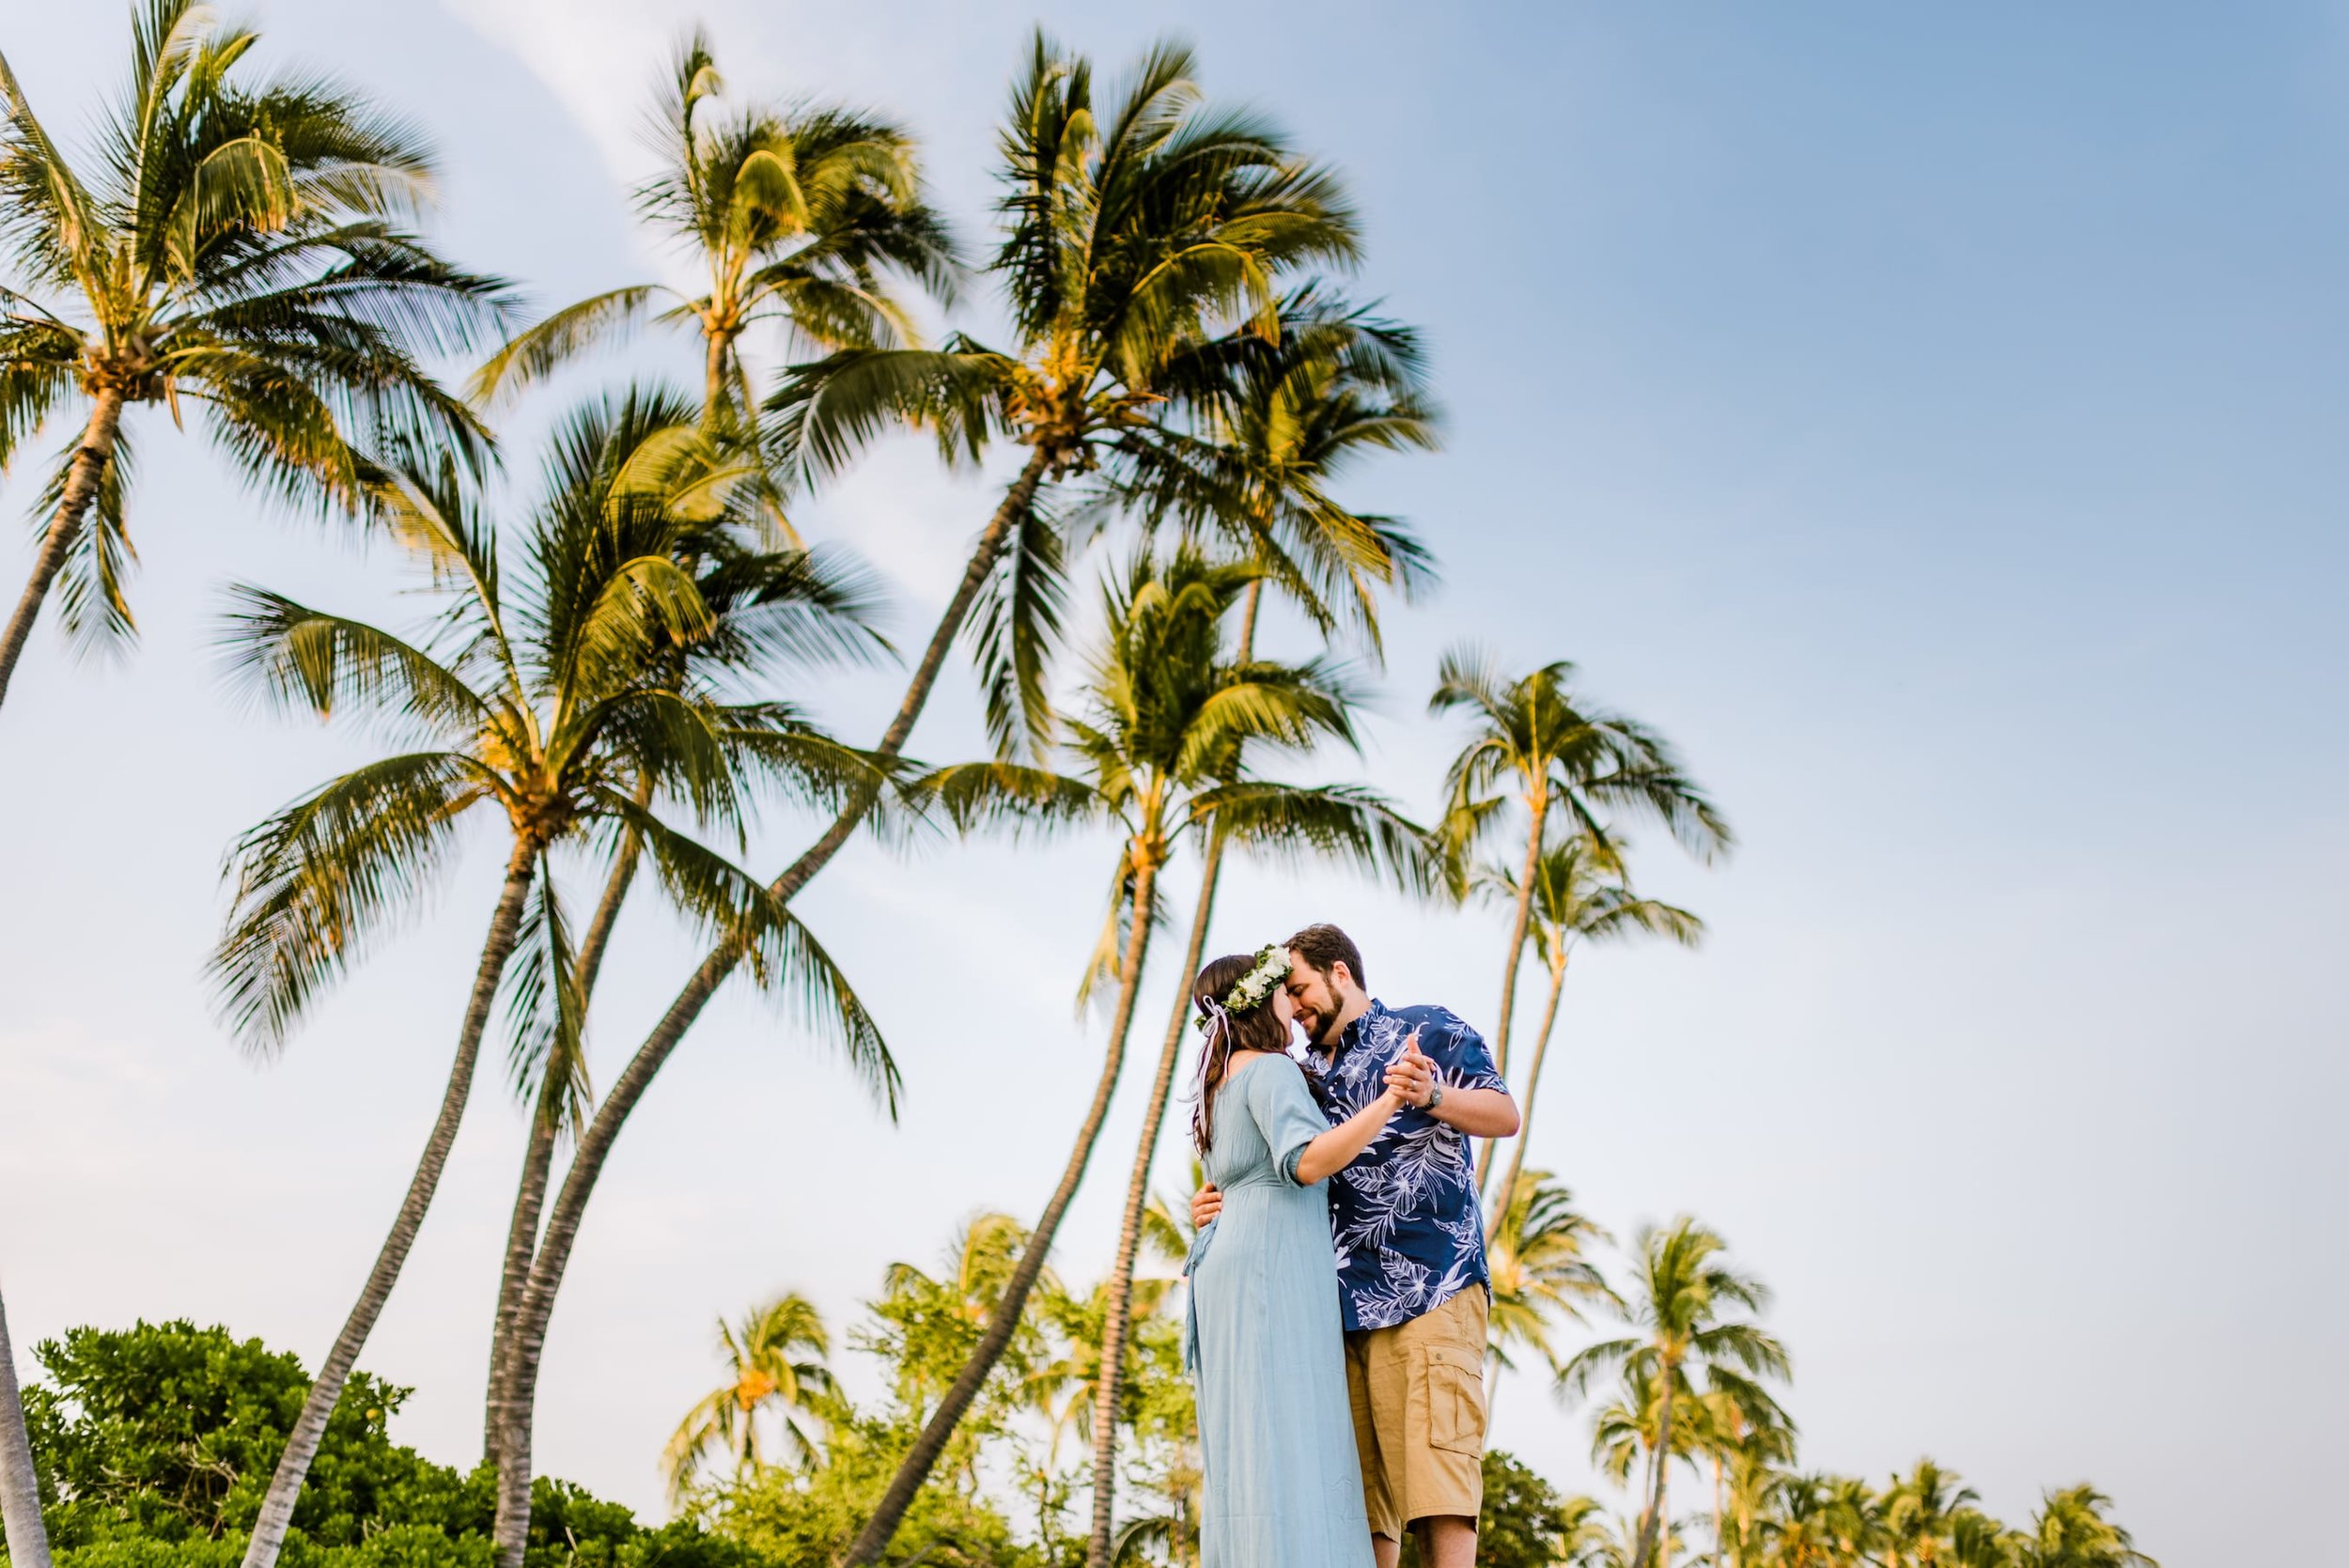 Sunrise-Waikoloa-Honeymoon-Elopement-28.jpg